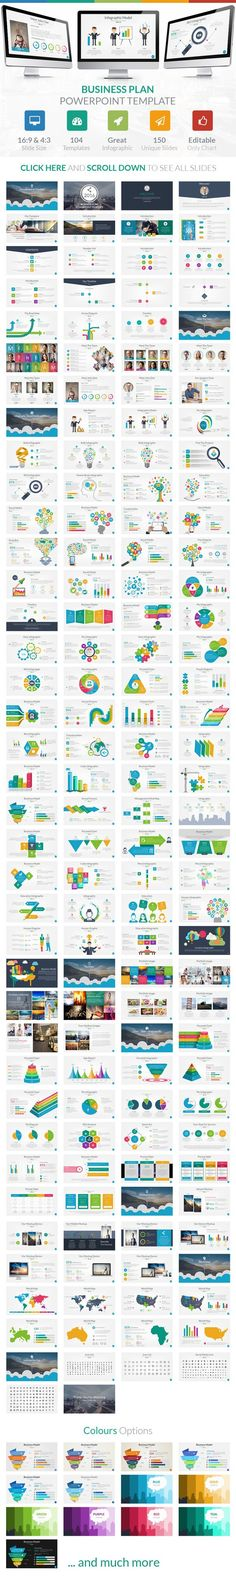 Modern Business Plan Business planning, Template and Business